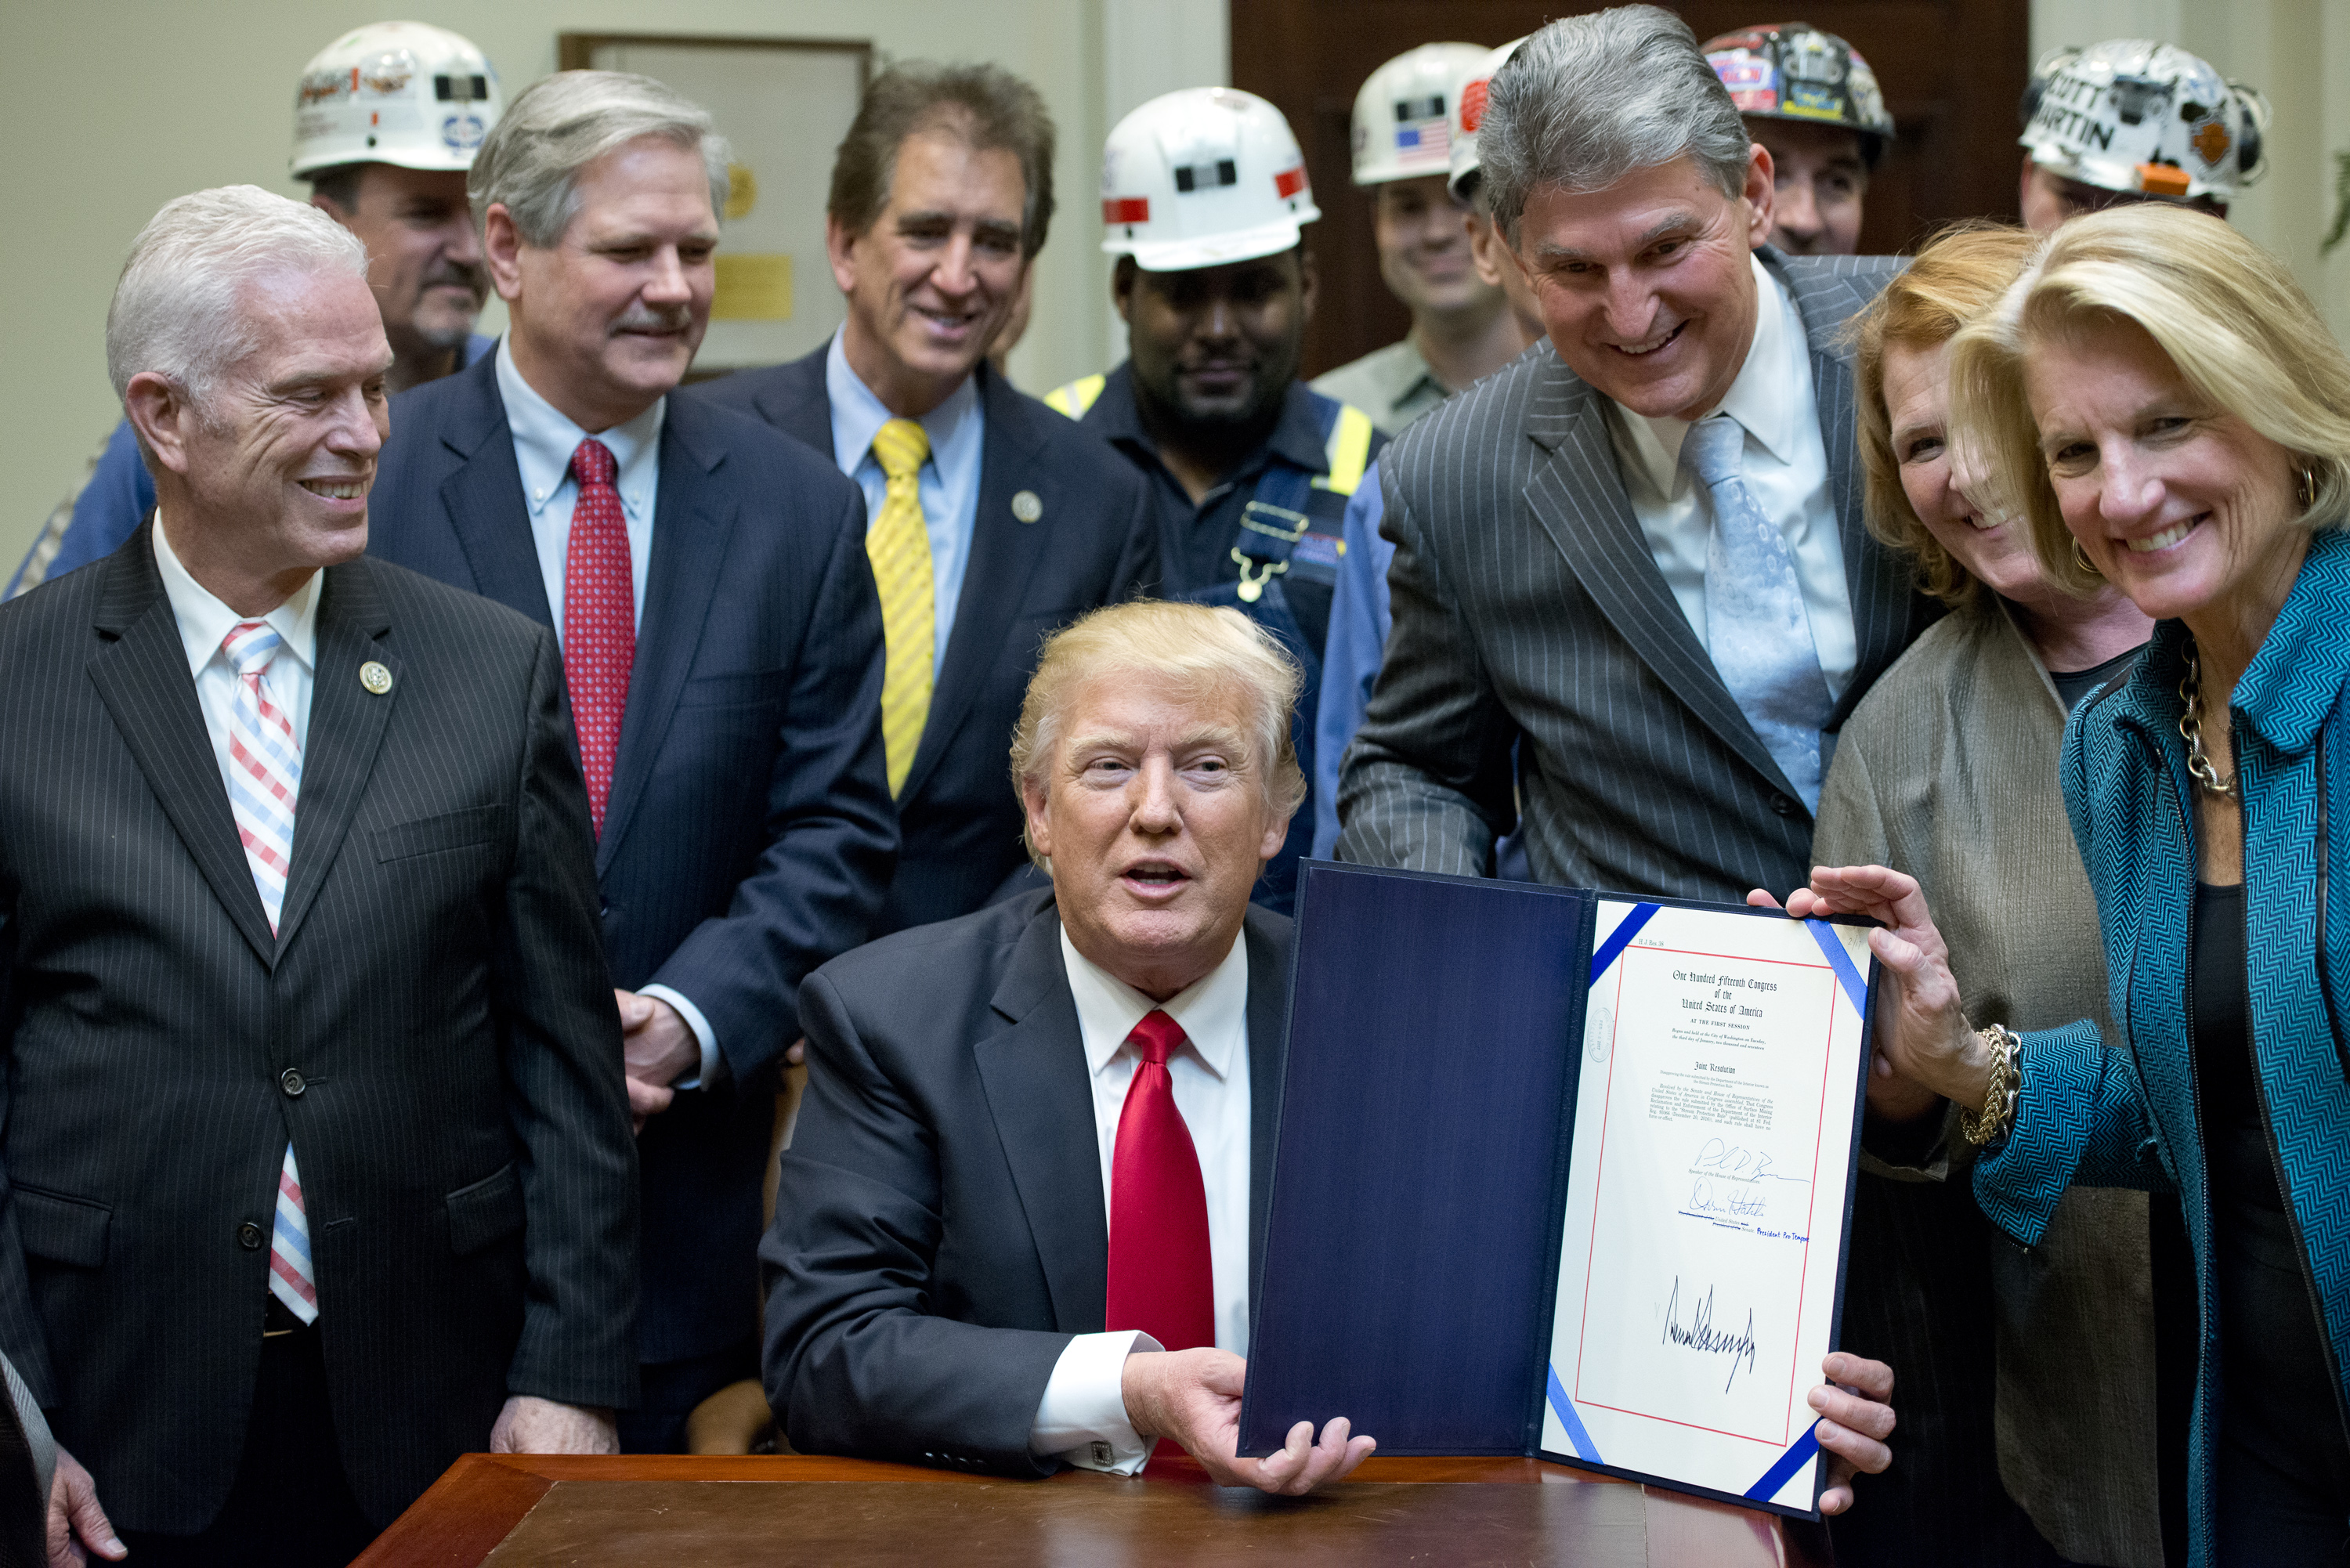 WASHINGTON, DC - FEBRUARY 16: U.S. President Donald Trump signs H.J. Res. 38, disapproving the rule submitted by the US Department of the Interior known as the Stream Protection Rule in the Roosevelt Room of the White House on February 16, 2017 in Washing